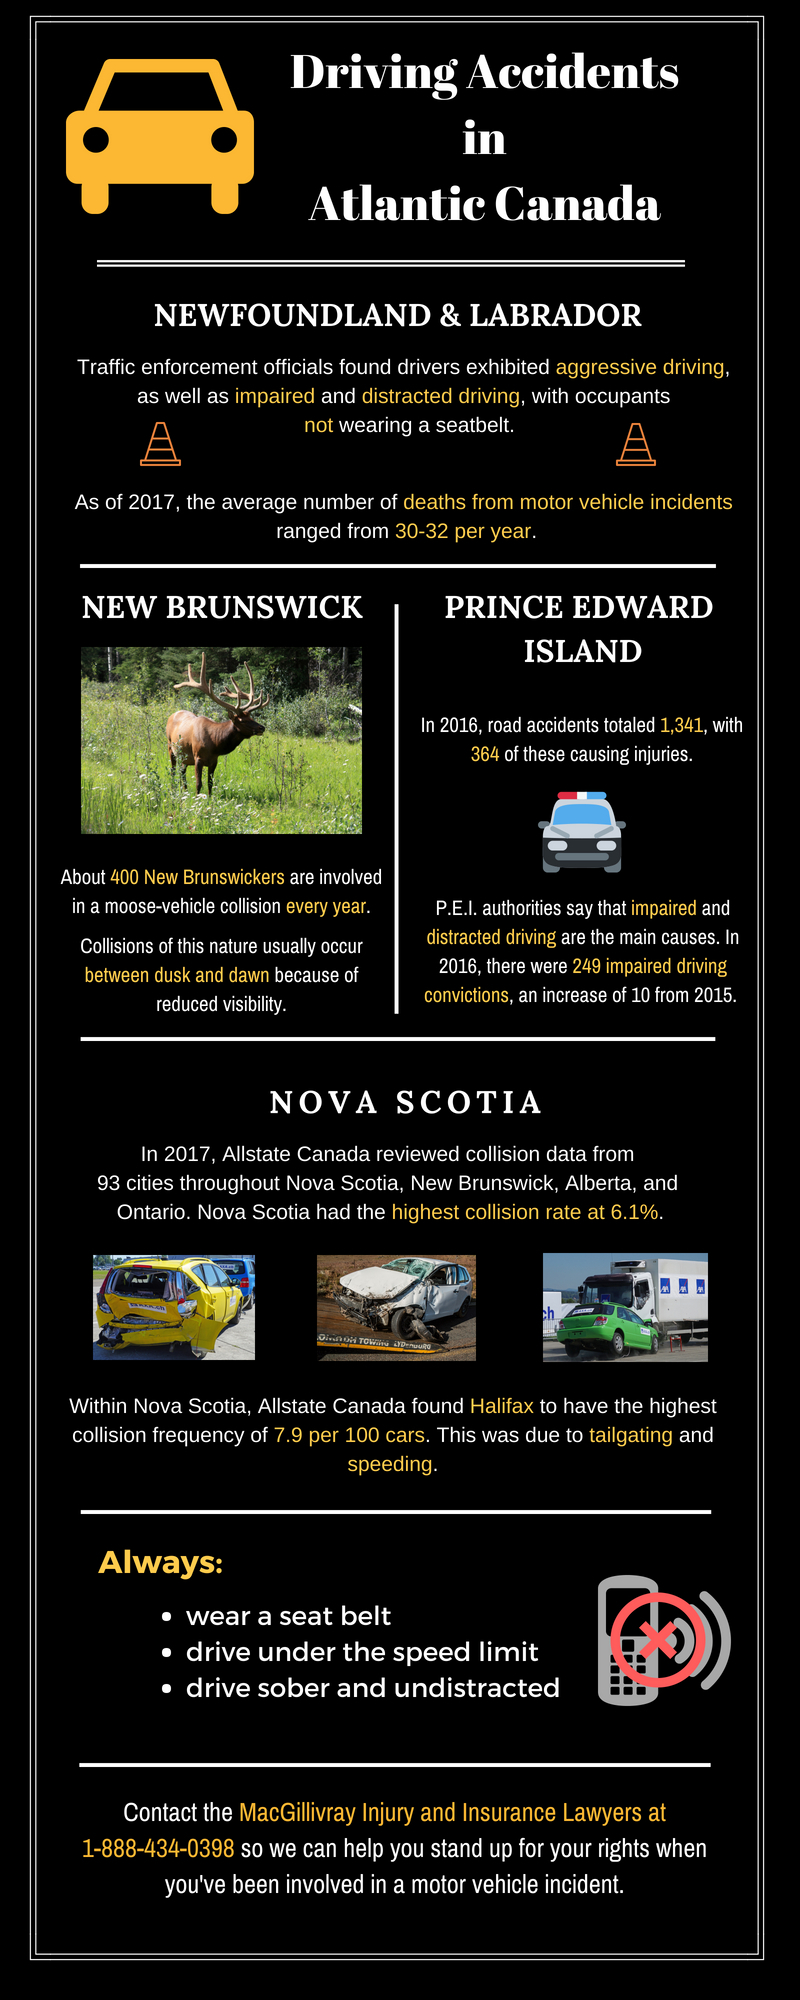 MacGillivray Injury and Insurance Law_Driving Accidents in Atlantic Canada.jpg